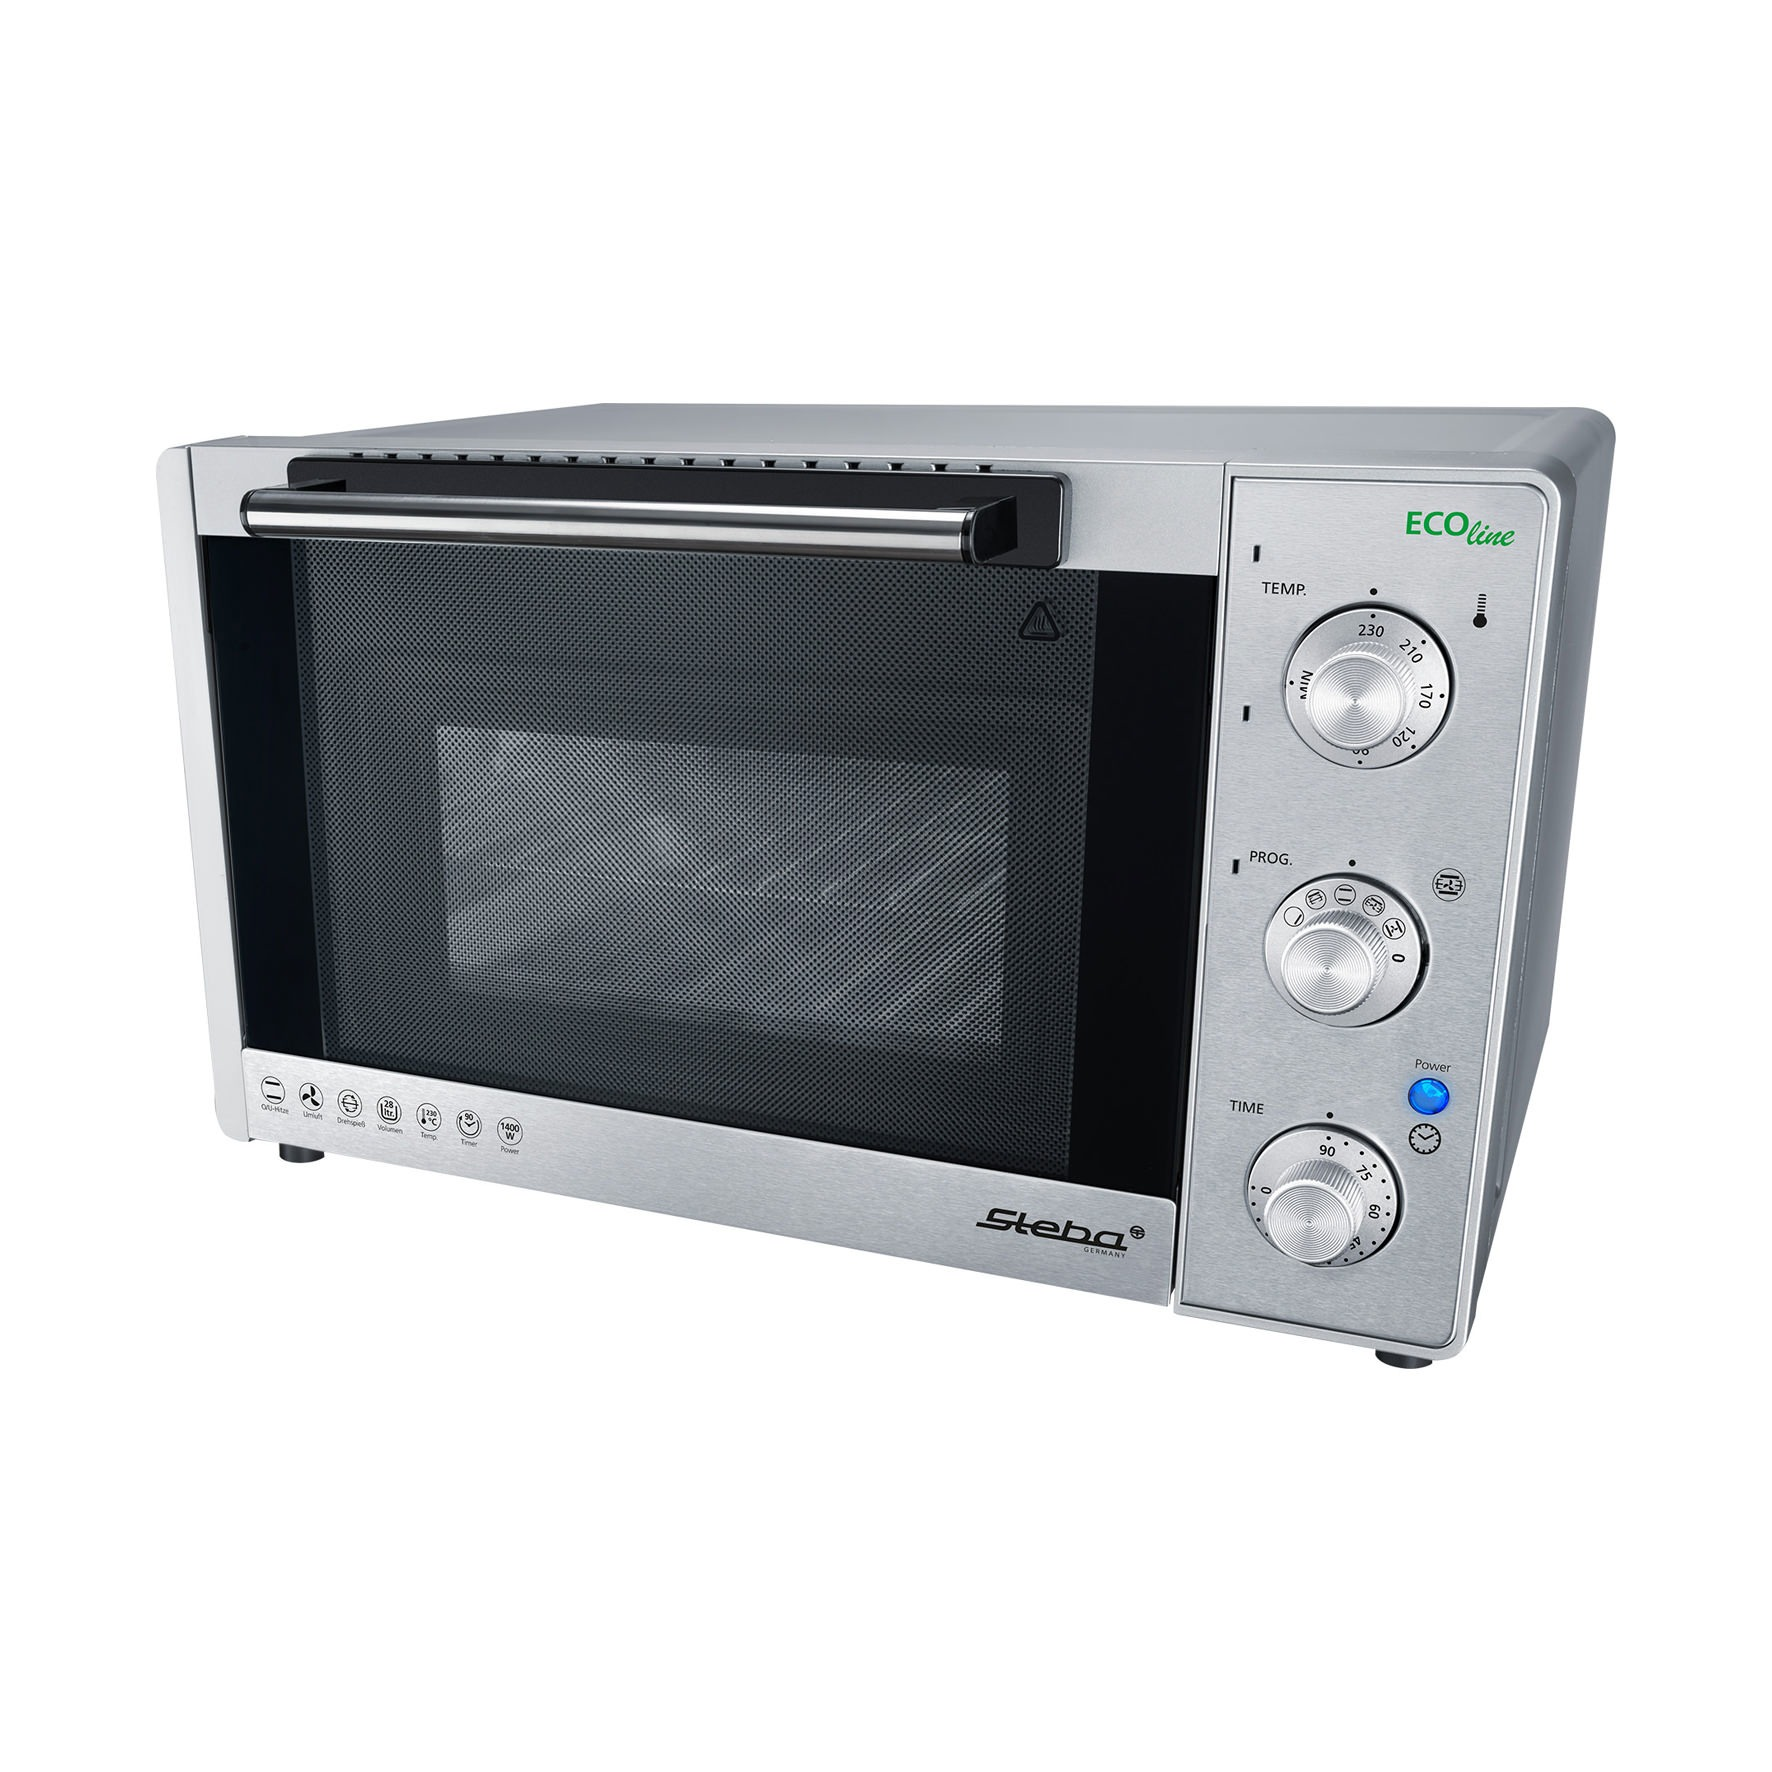 Steba KB28ECO Mini oven